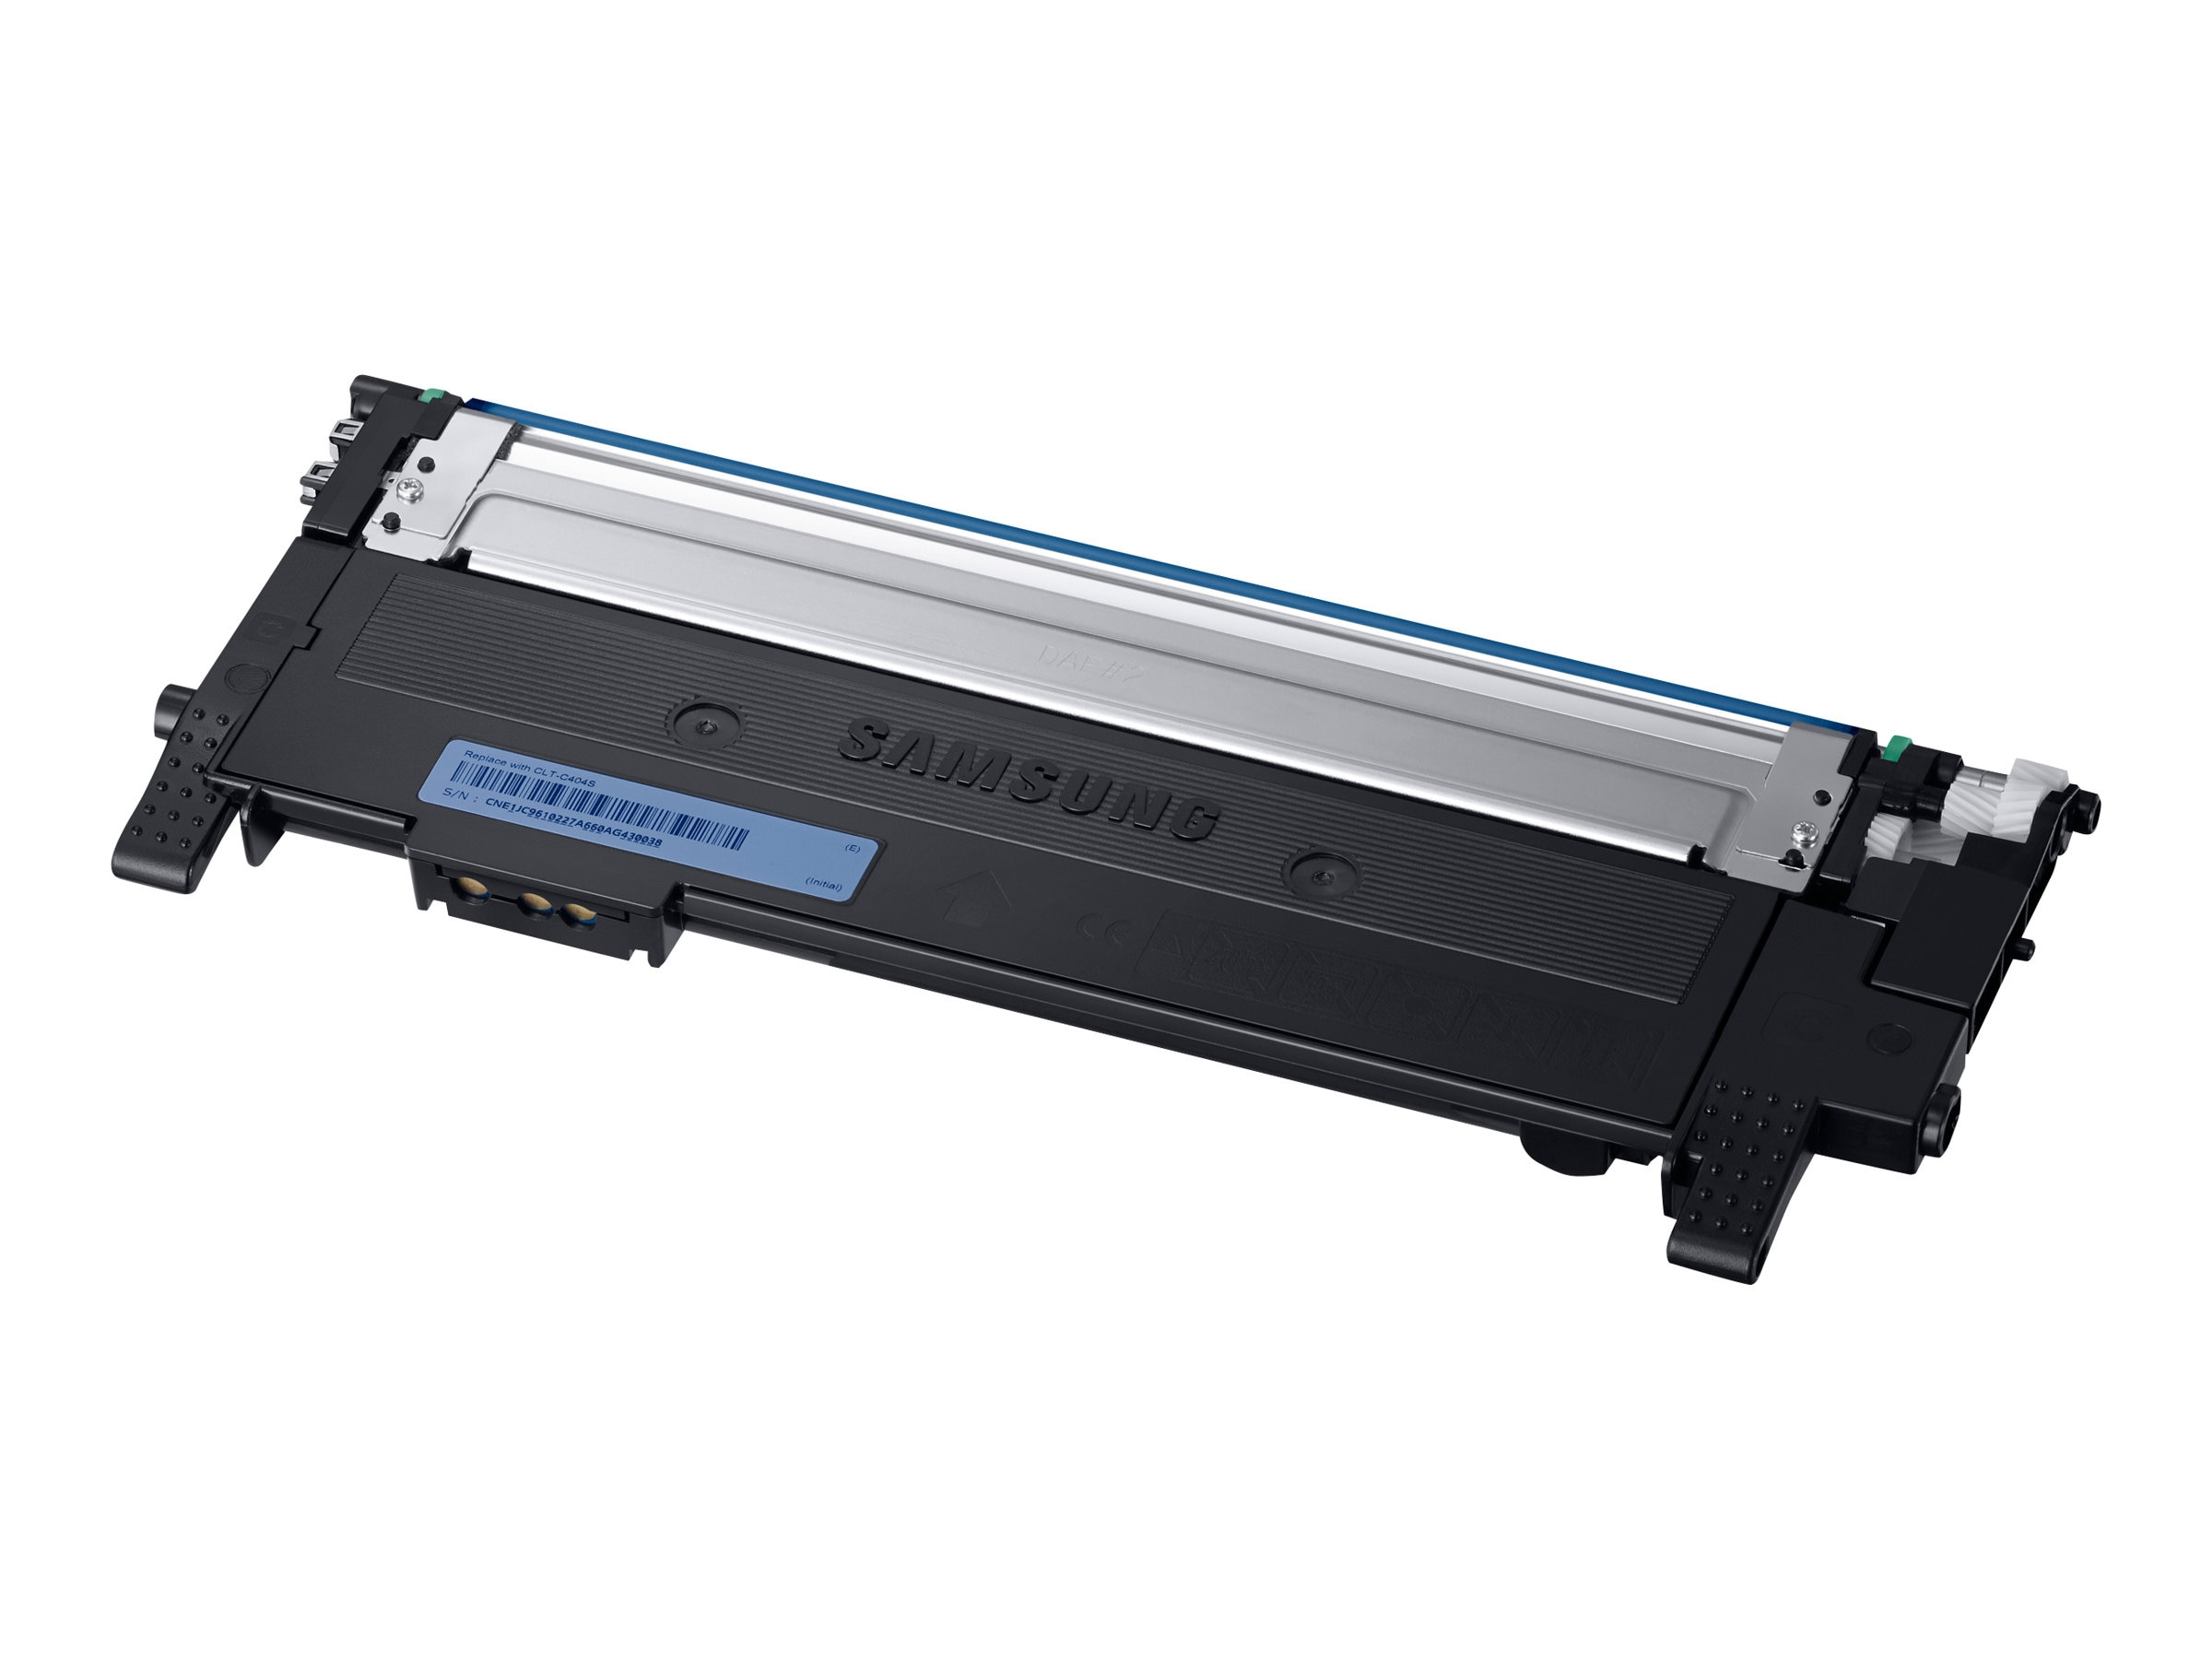 Samsung Cyan Toner Cartridge for XPress C430W, C480W & C480FW